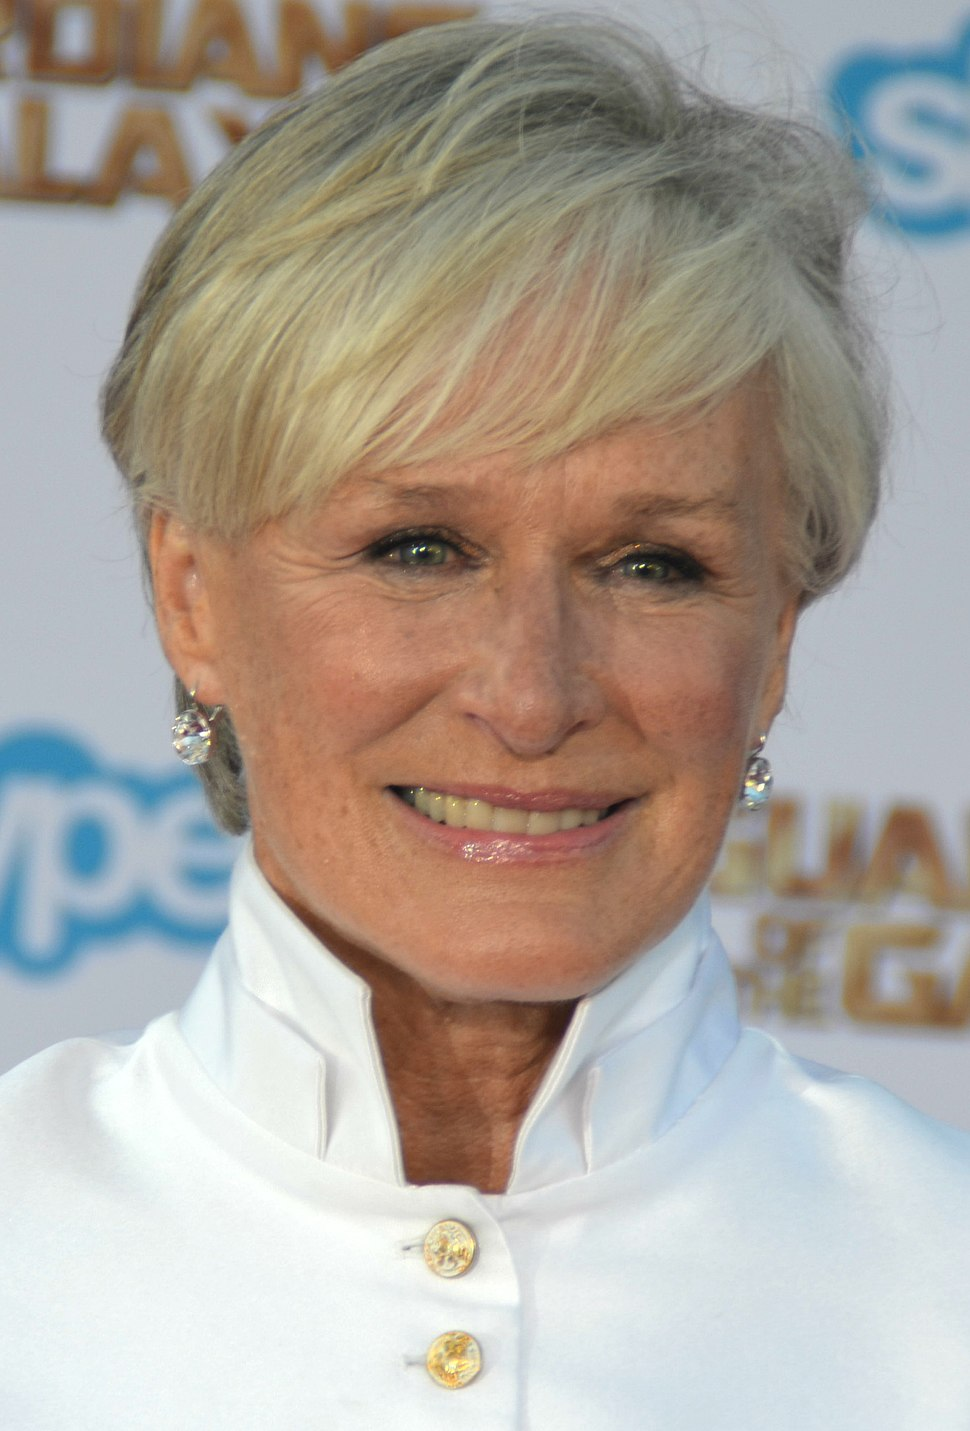 Glenn Close - Guardians of the Galaxy premiere - July 2014 (cropped)